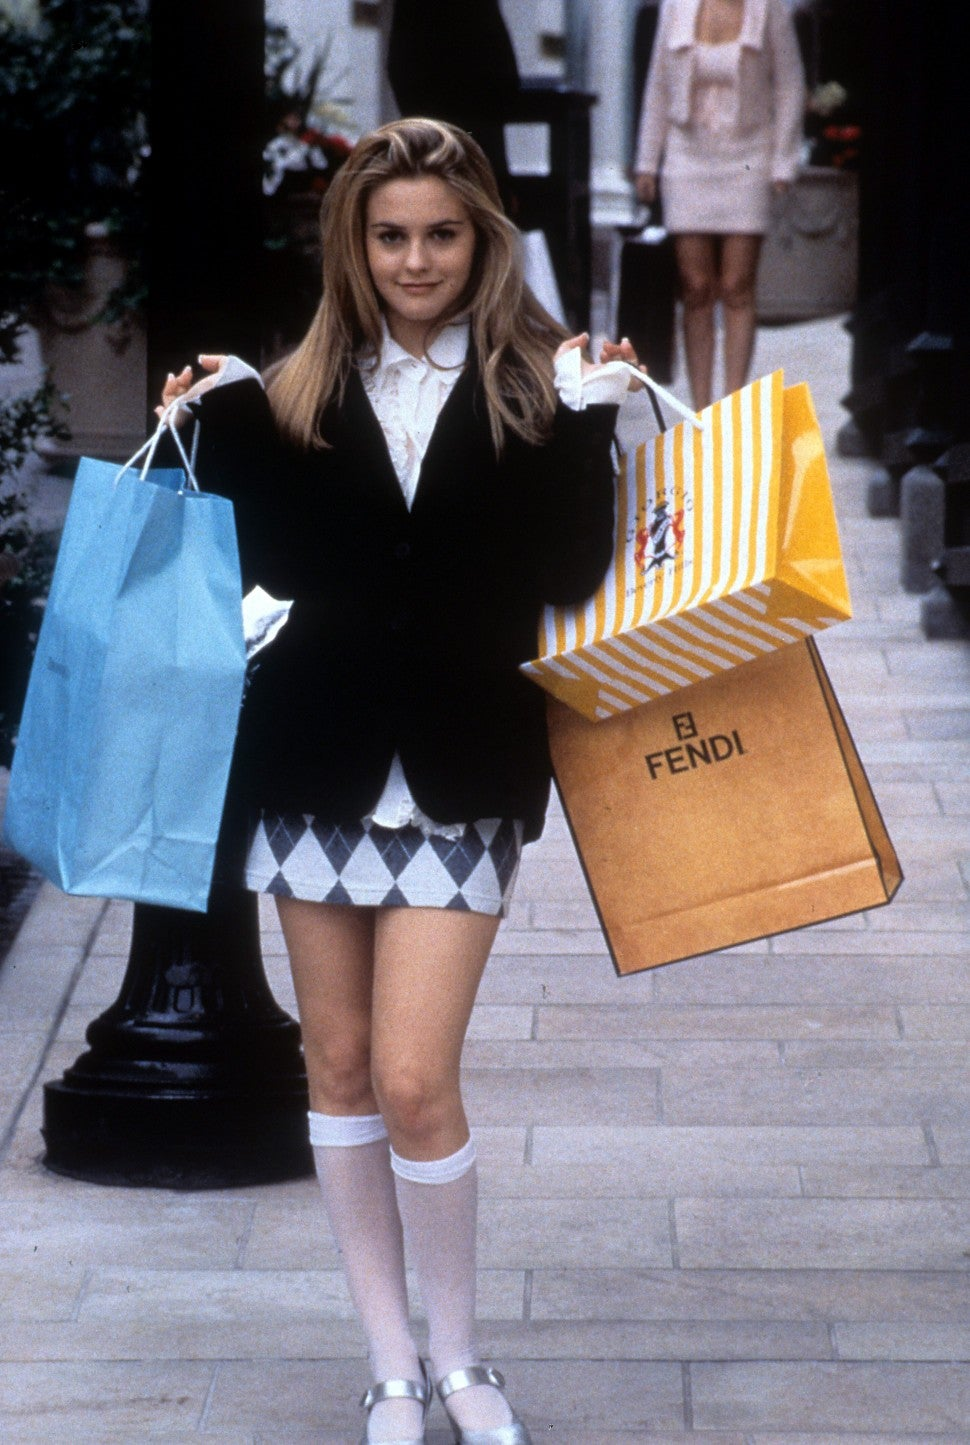 Clueless Cher Horowitz shopping outfit